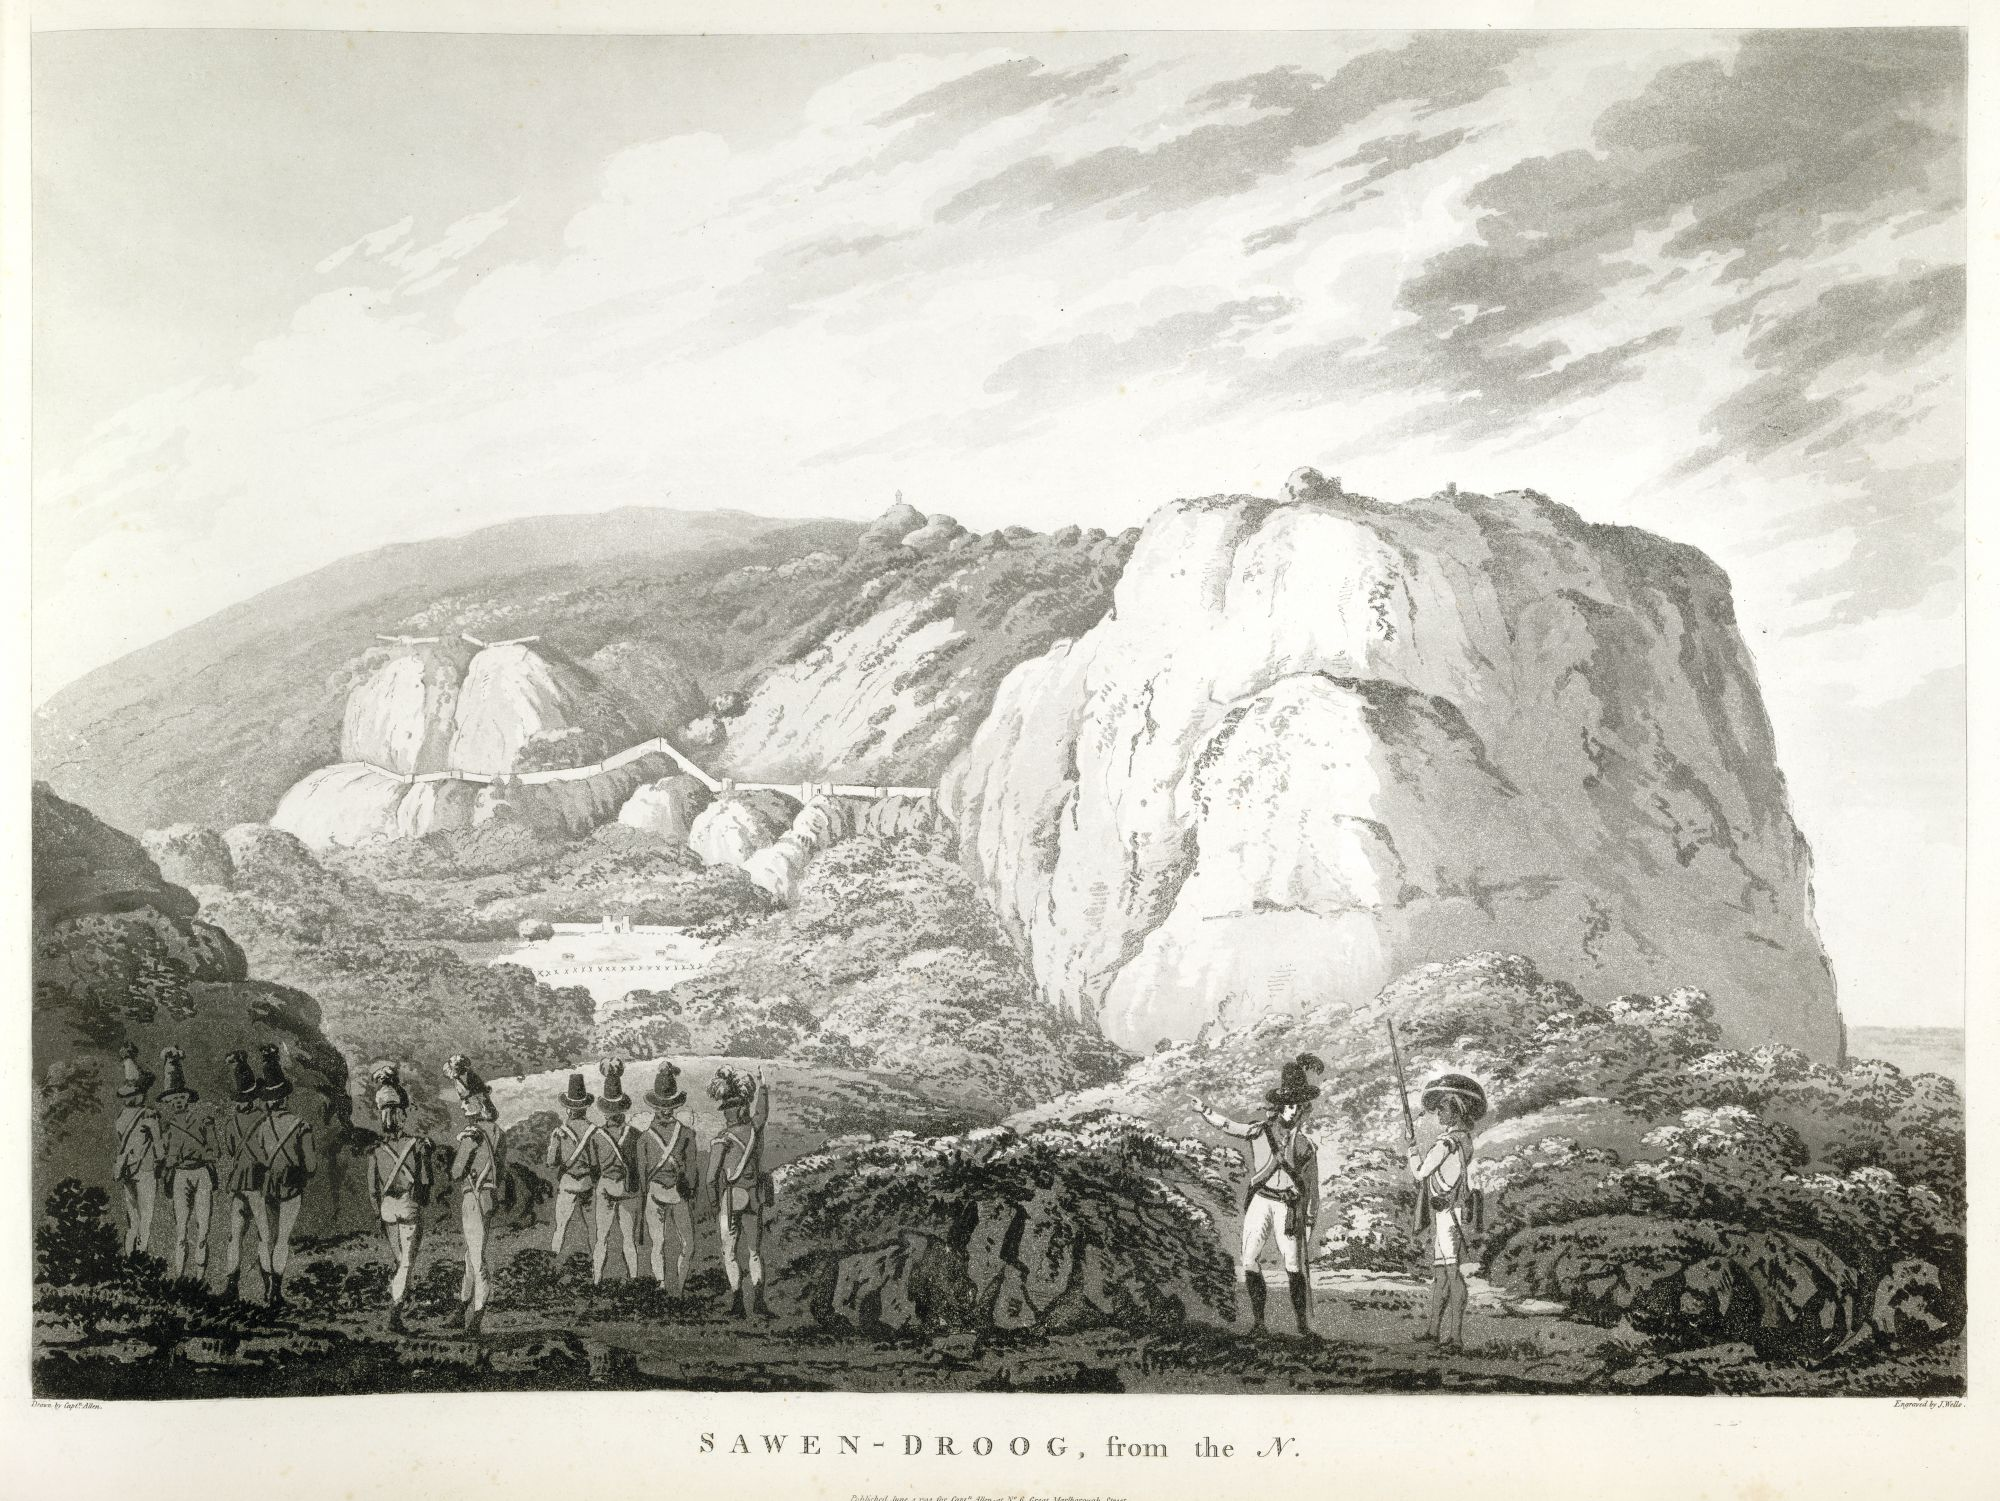 Sawen-Droog, from the N[orth], by John Wells after Alexander Allan.